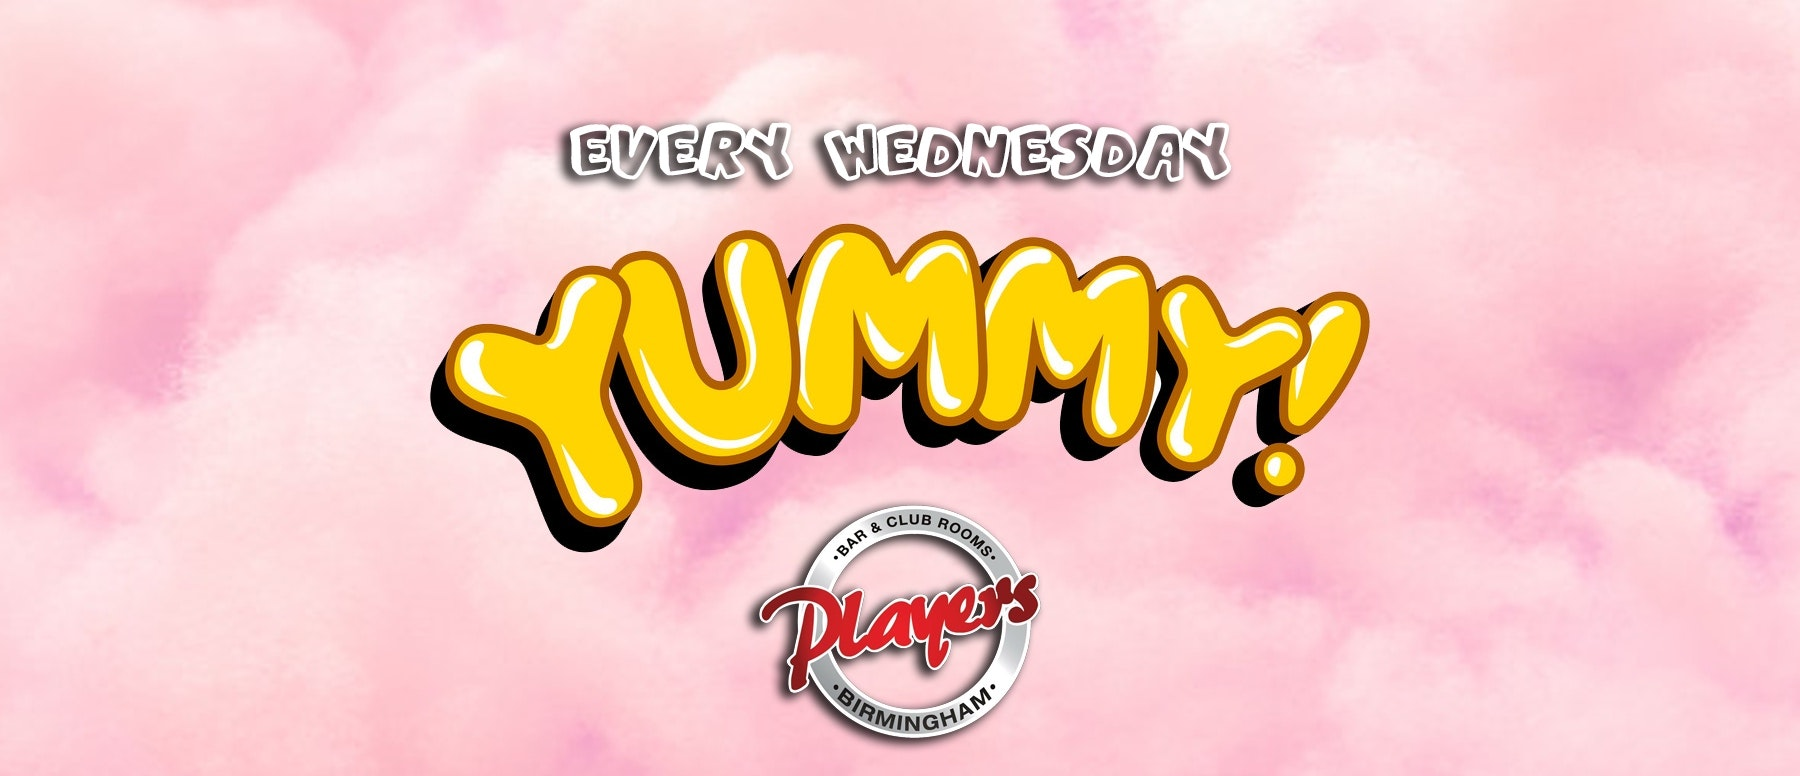 YUMMY! Socially Distanced Wednesday nights at Players!